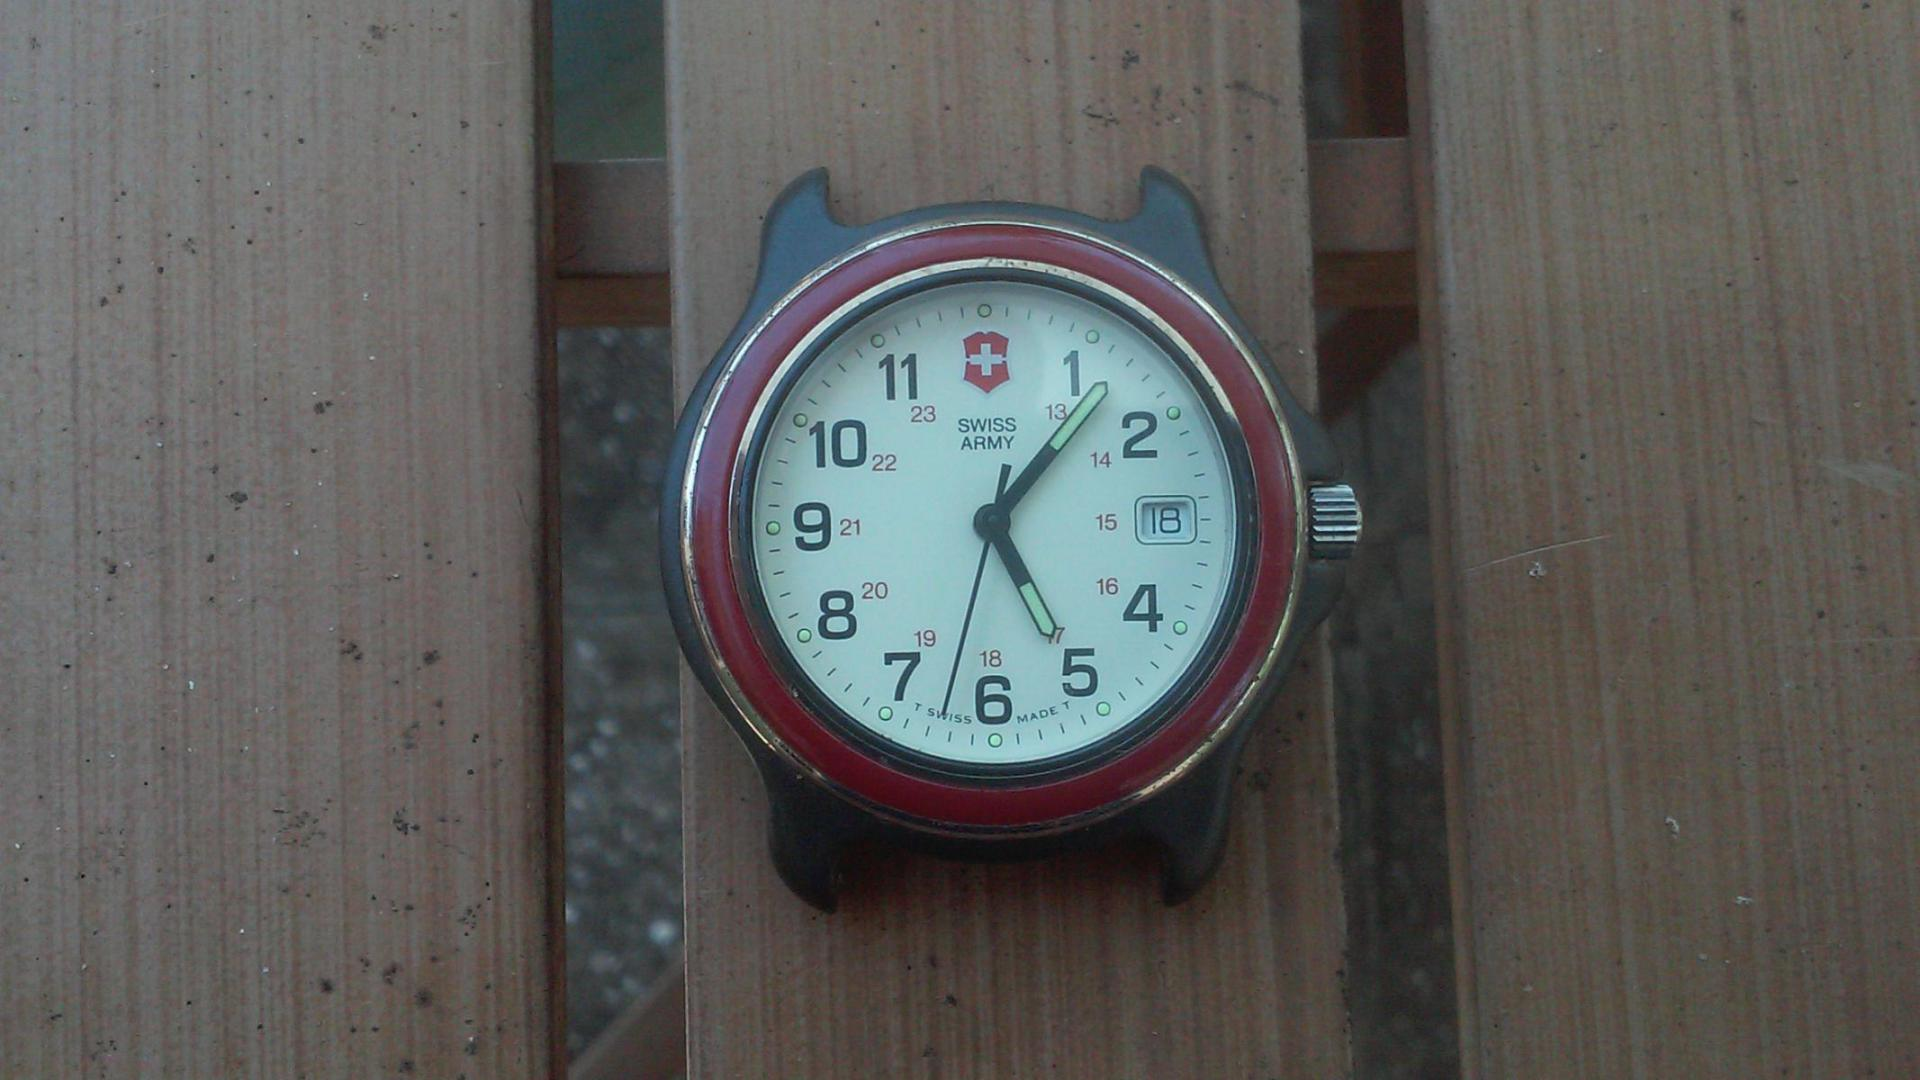 Swiss Army watch-20150719_134151_1437386603155.jpg